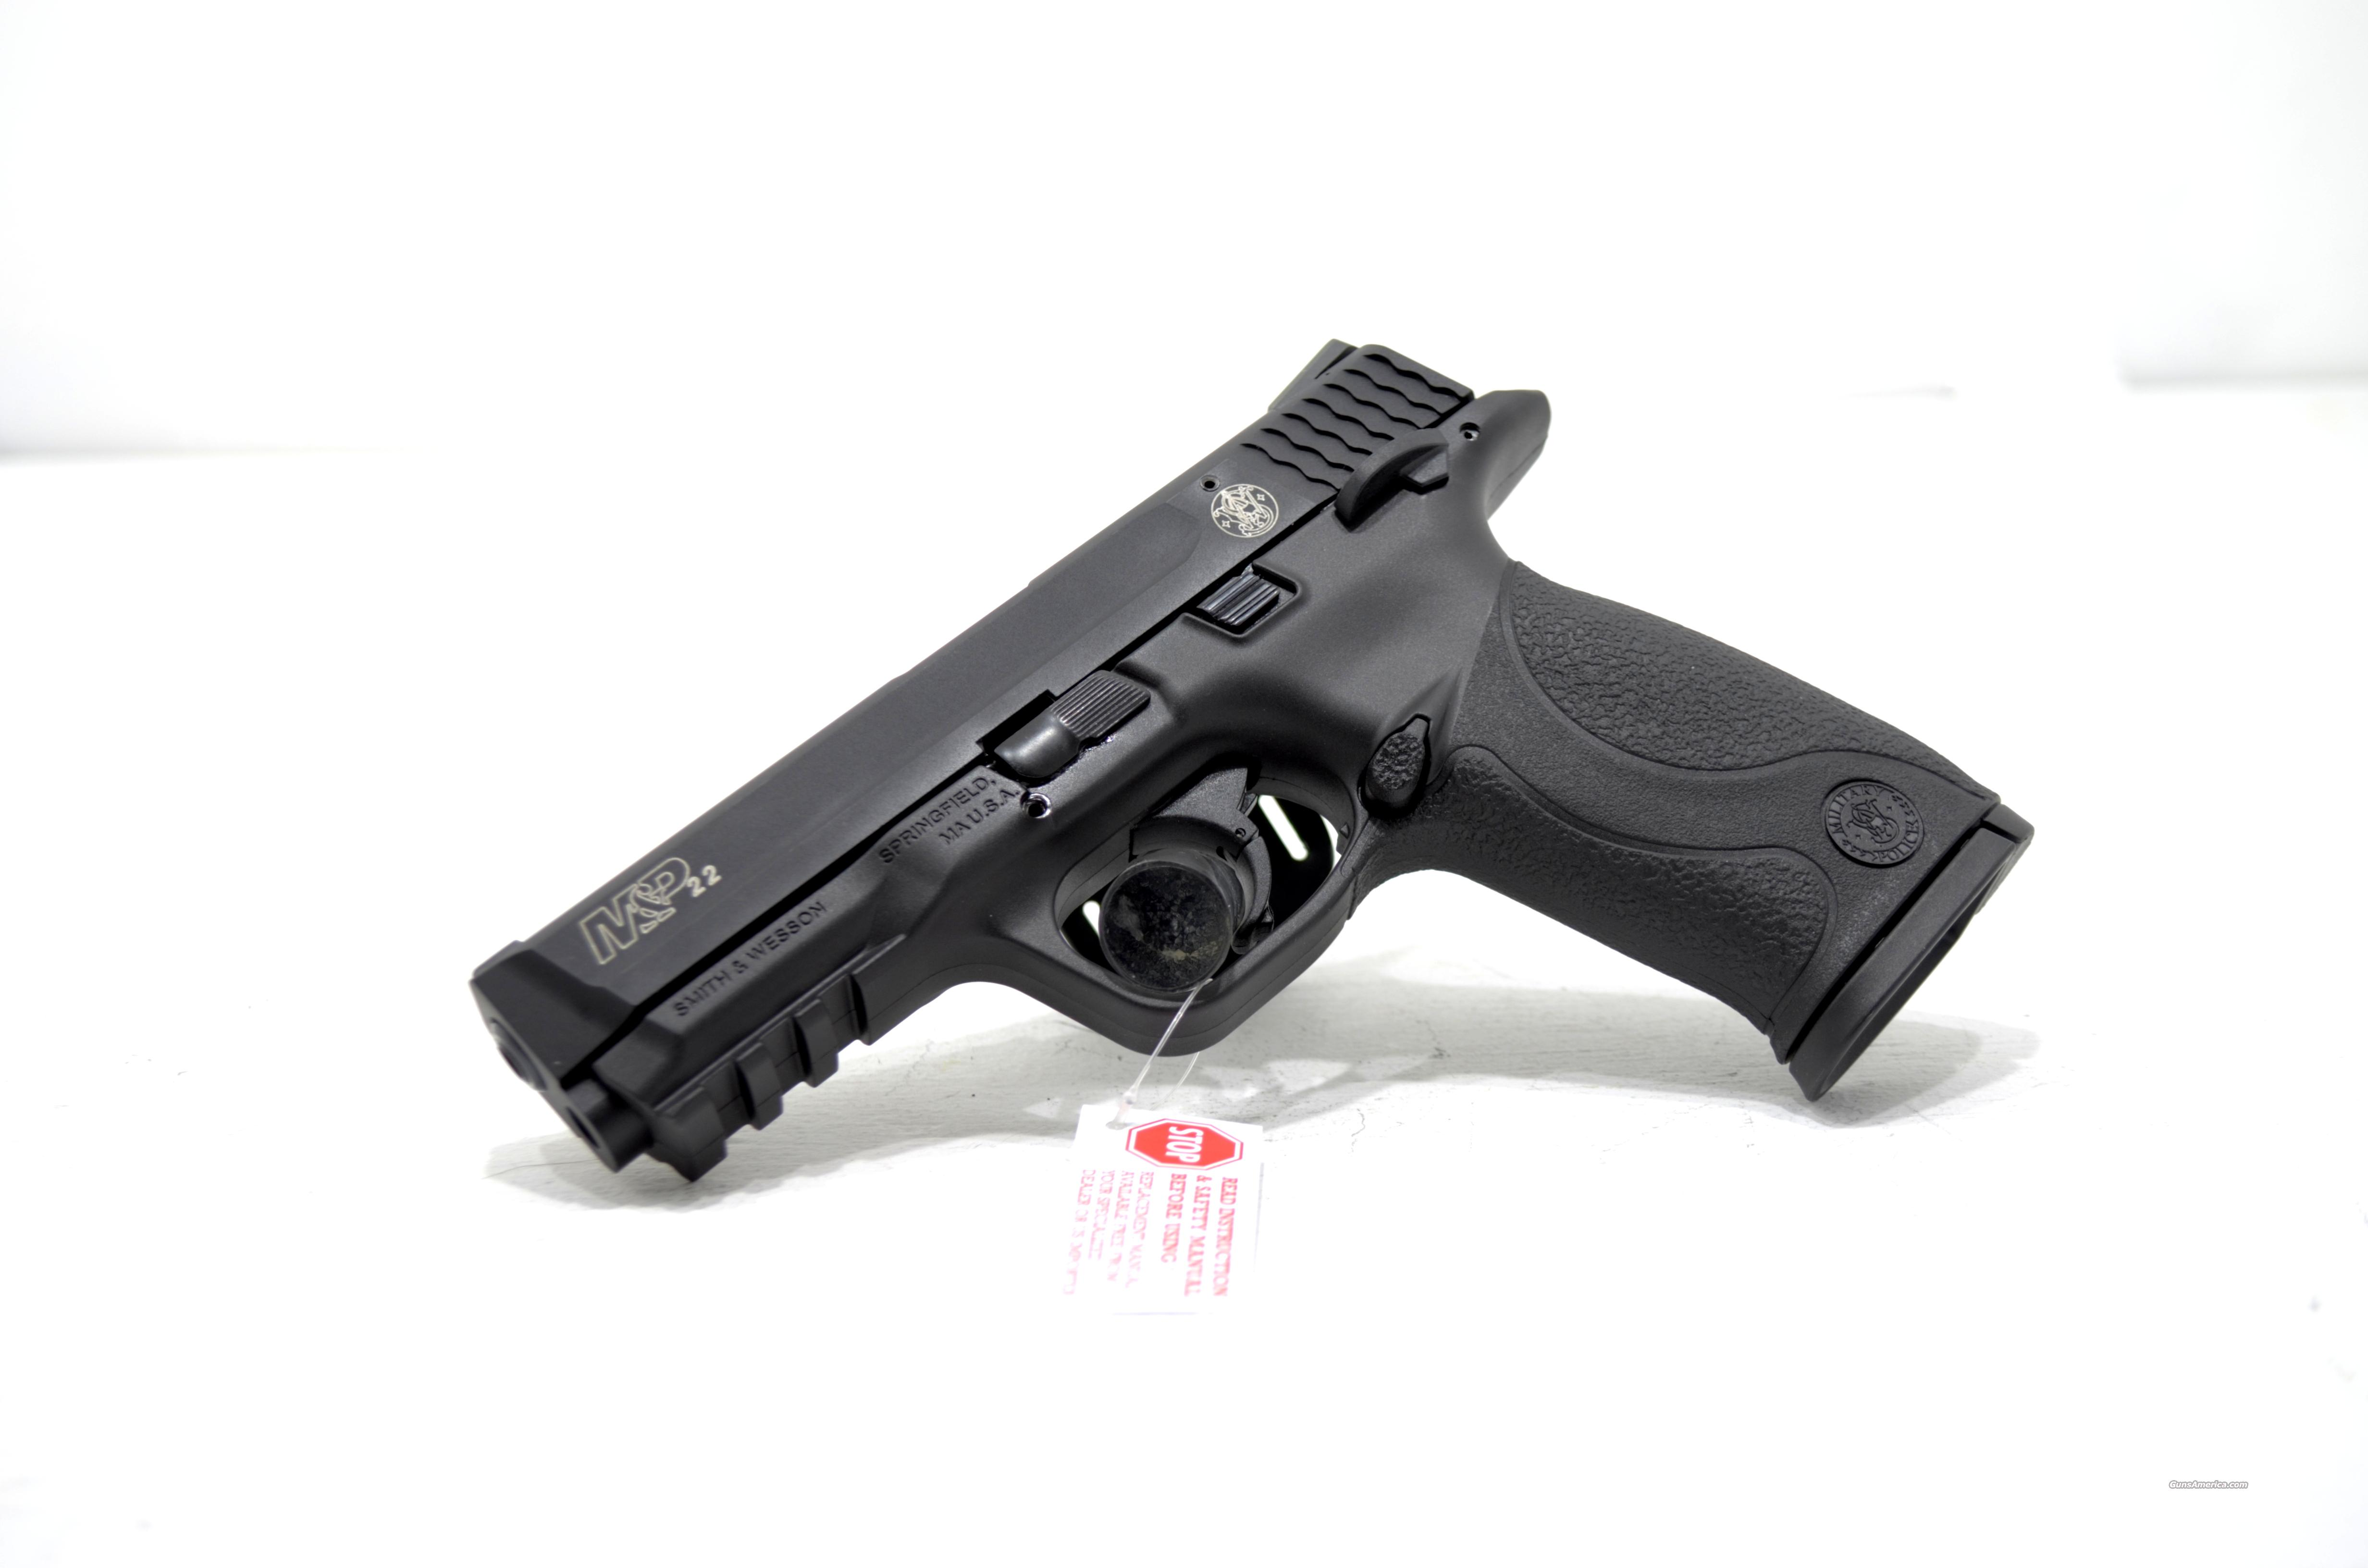 NEW SMITH & WESSON M&P22 .22lr FREE SHIPPING!  Guns > Pistols > Smith & Wesson Pistols - Autos > .22 Autos